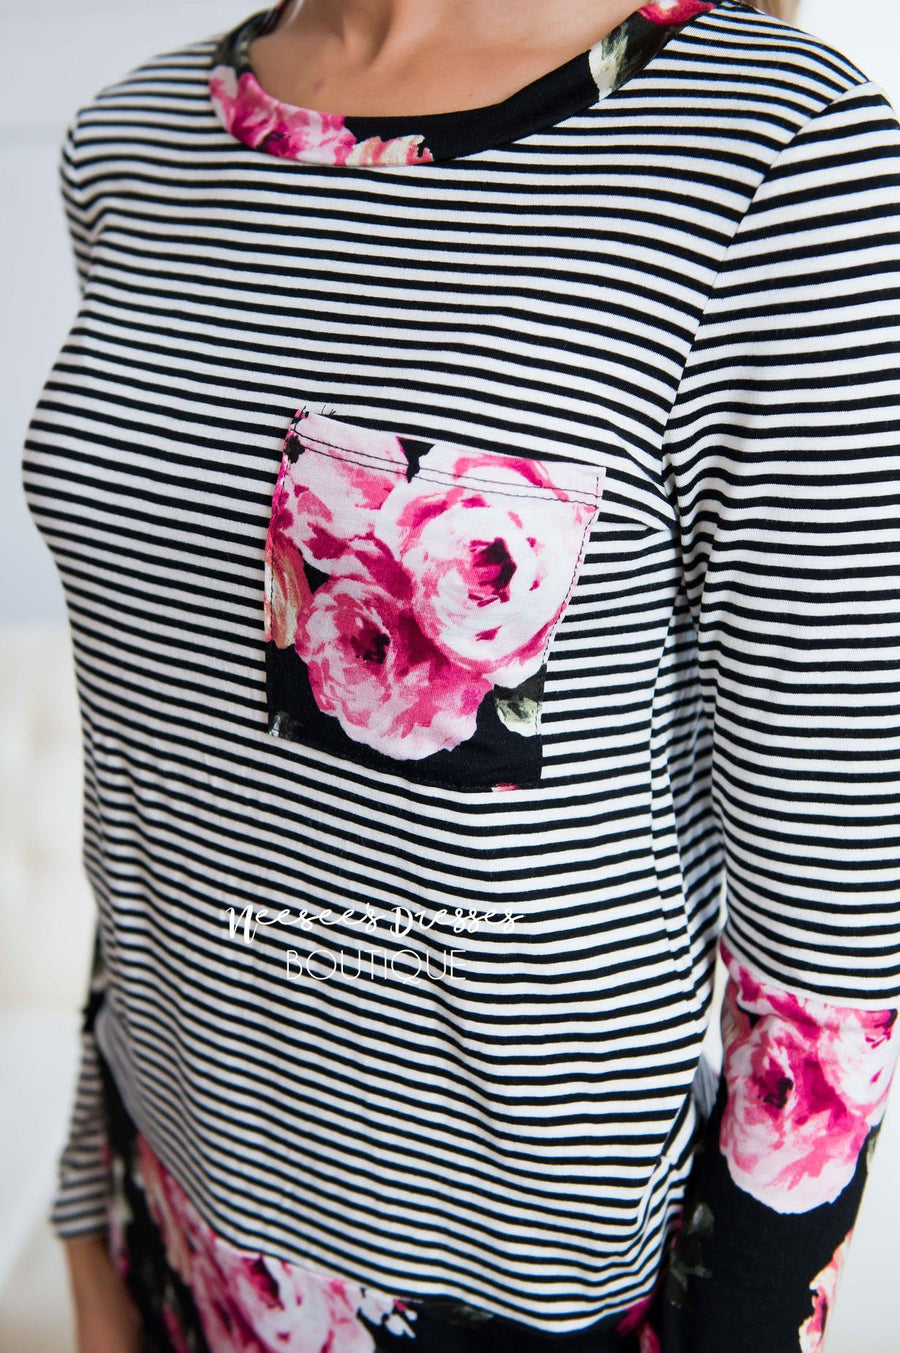 Blooming Blossom Floral & Striped Top